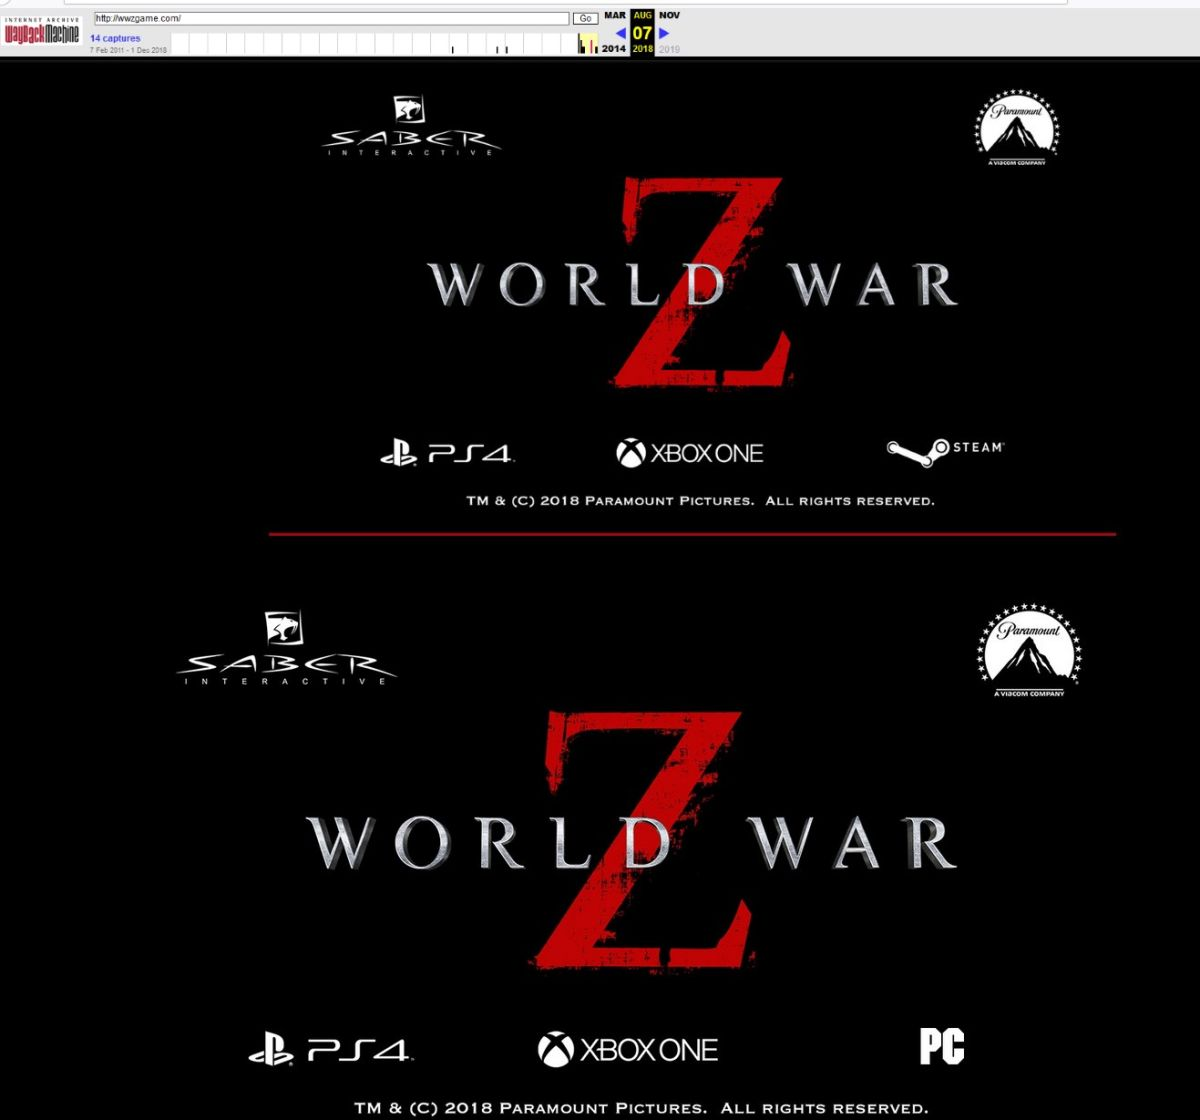 World War Z is coming to the Epic Store | PC Gamer